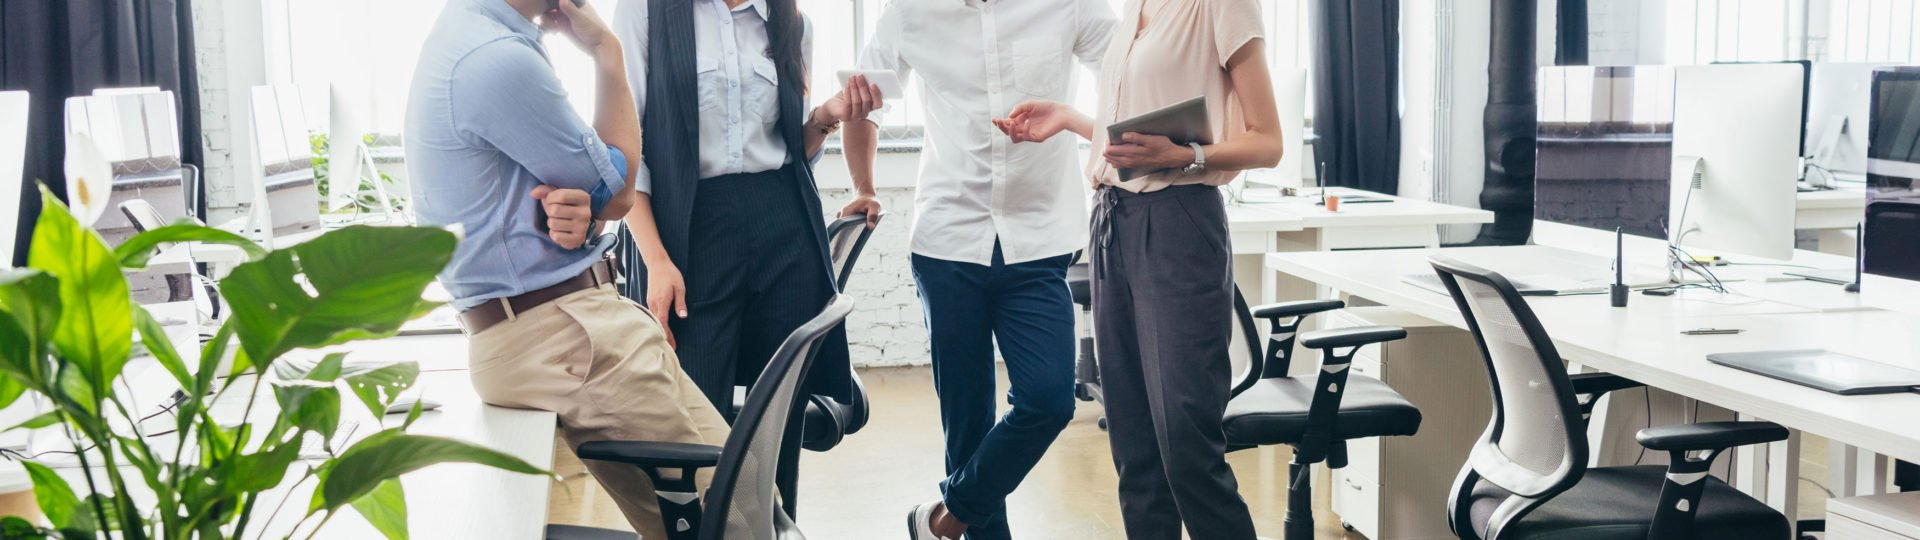 young attractive business associates in casual work attire